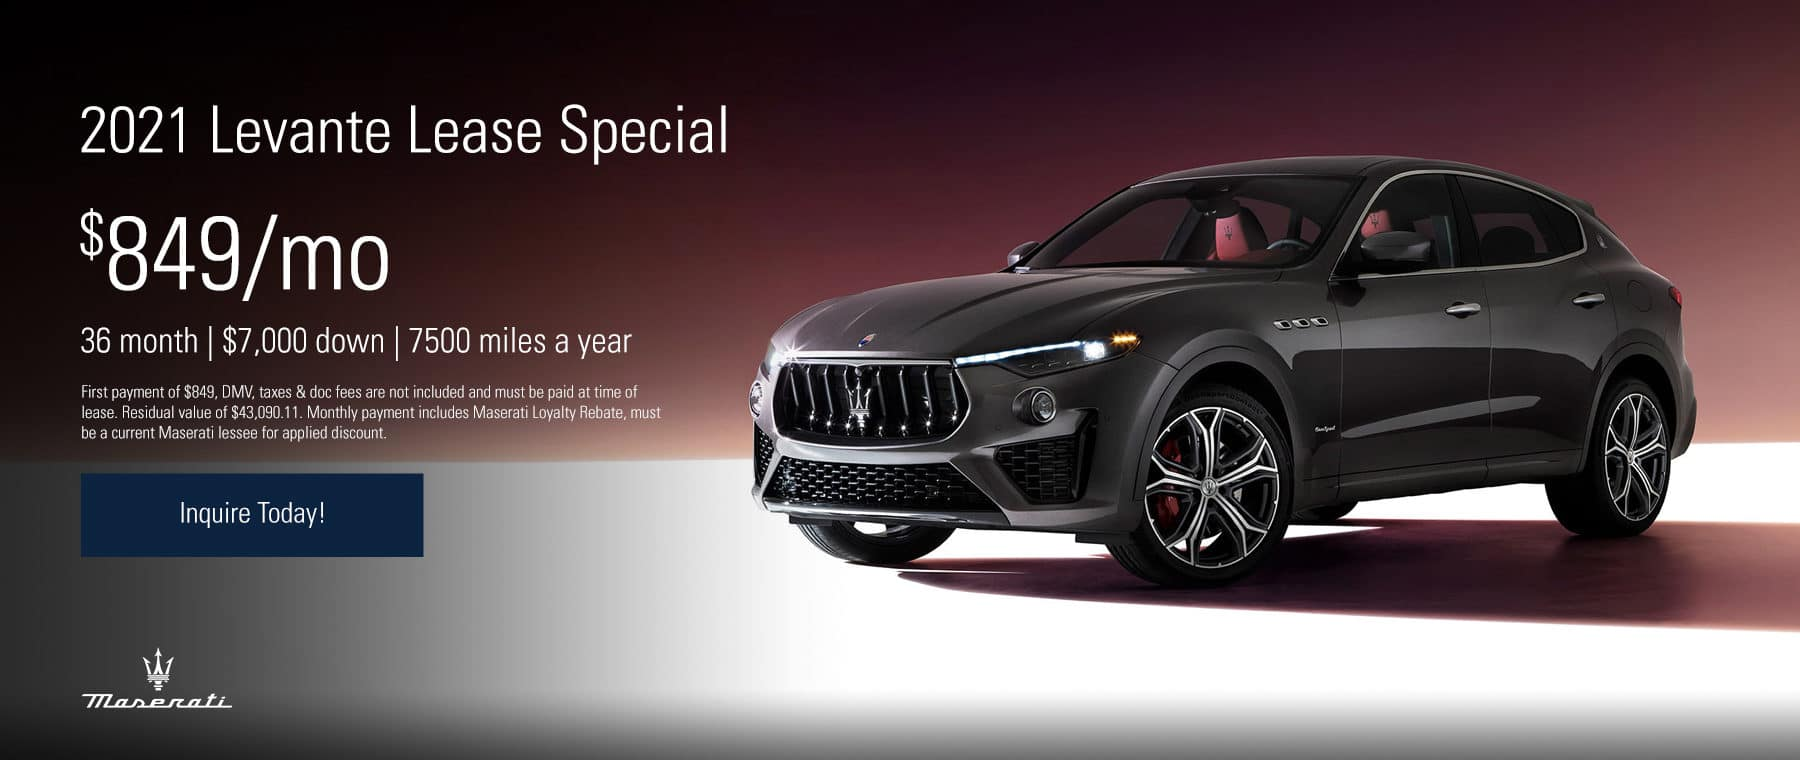 2021 Levante Lease Special for 36 Months, $7,000 Down, $849/mo. 7500 miles per year